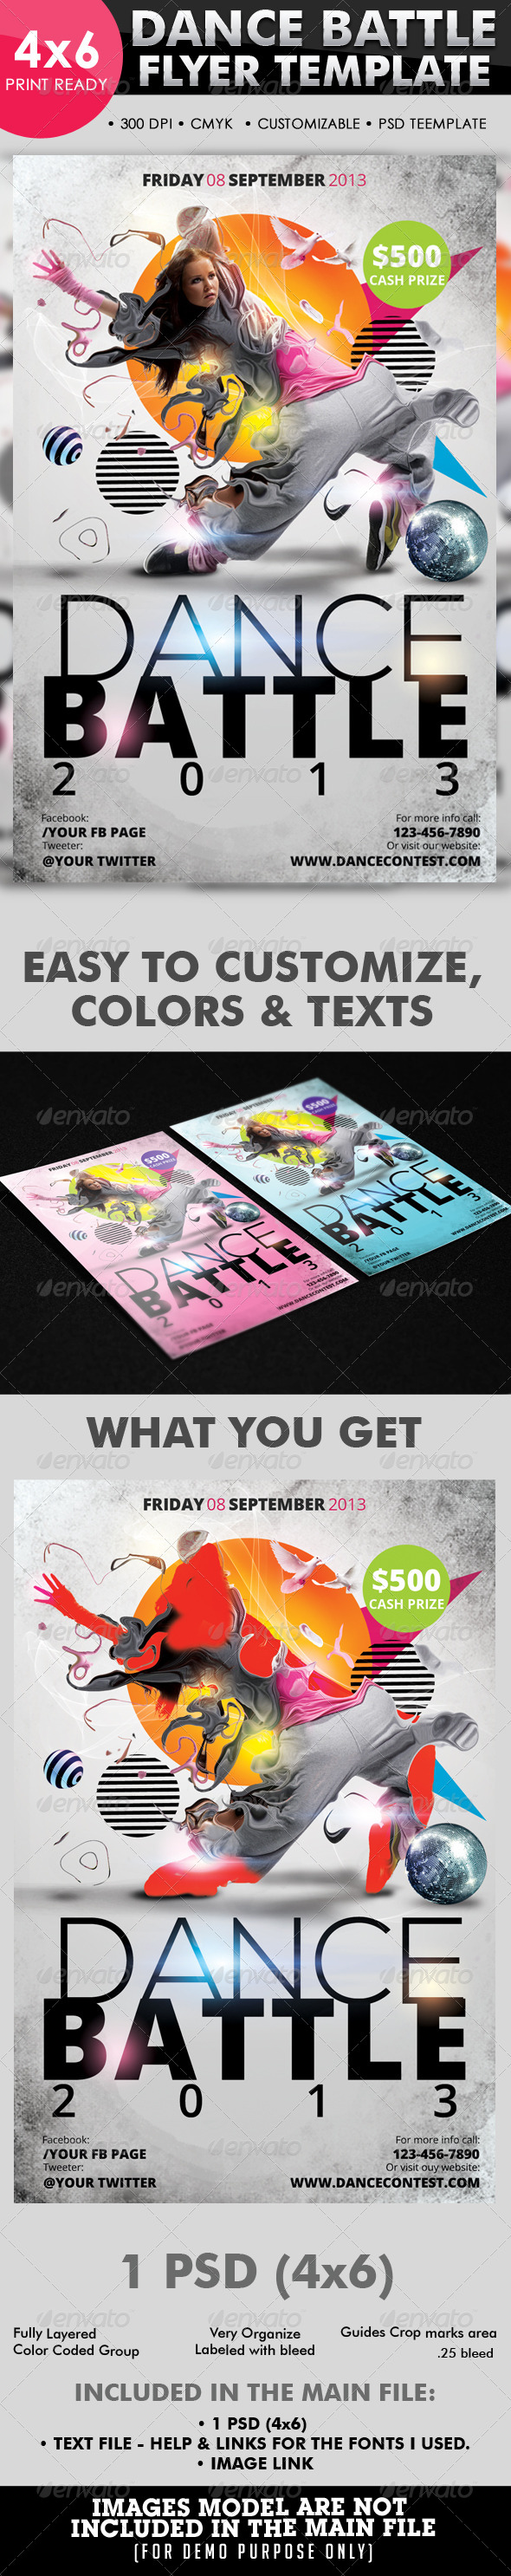 Dance Battle Flyer Template - Flyers Print Templates